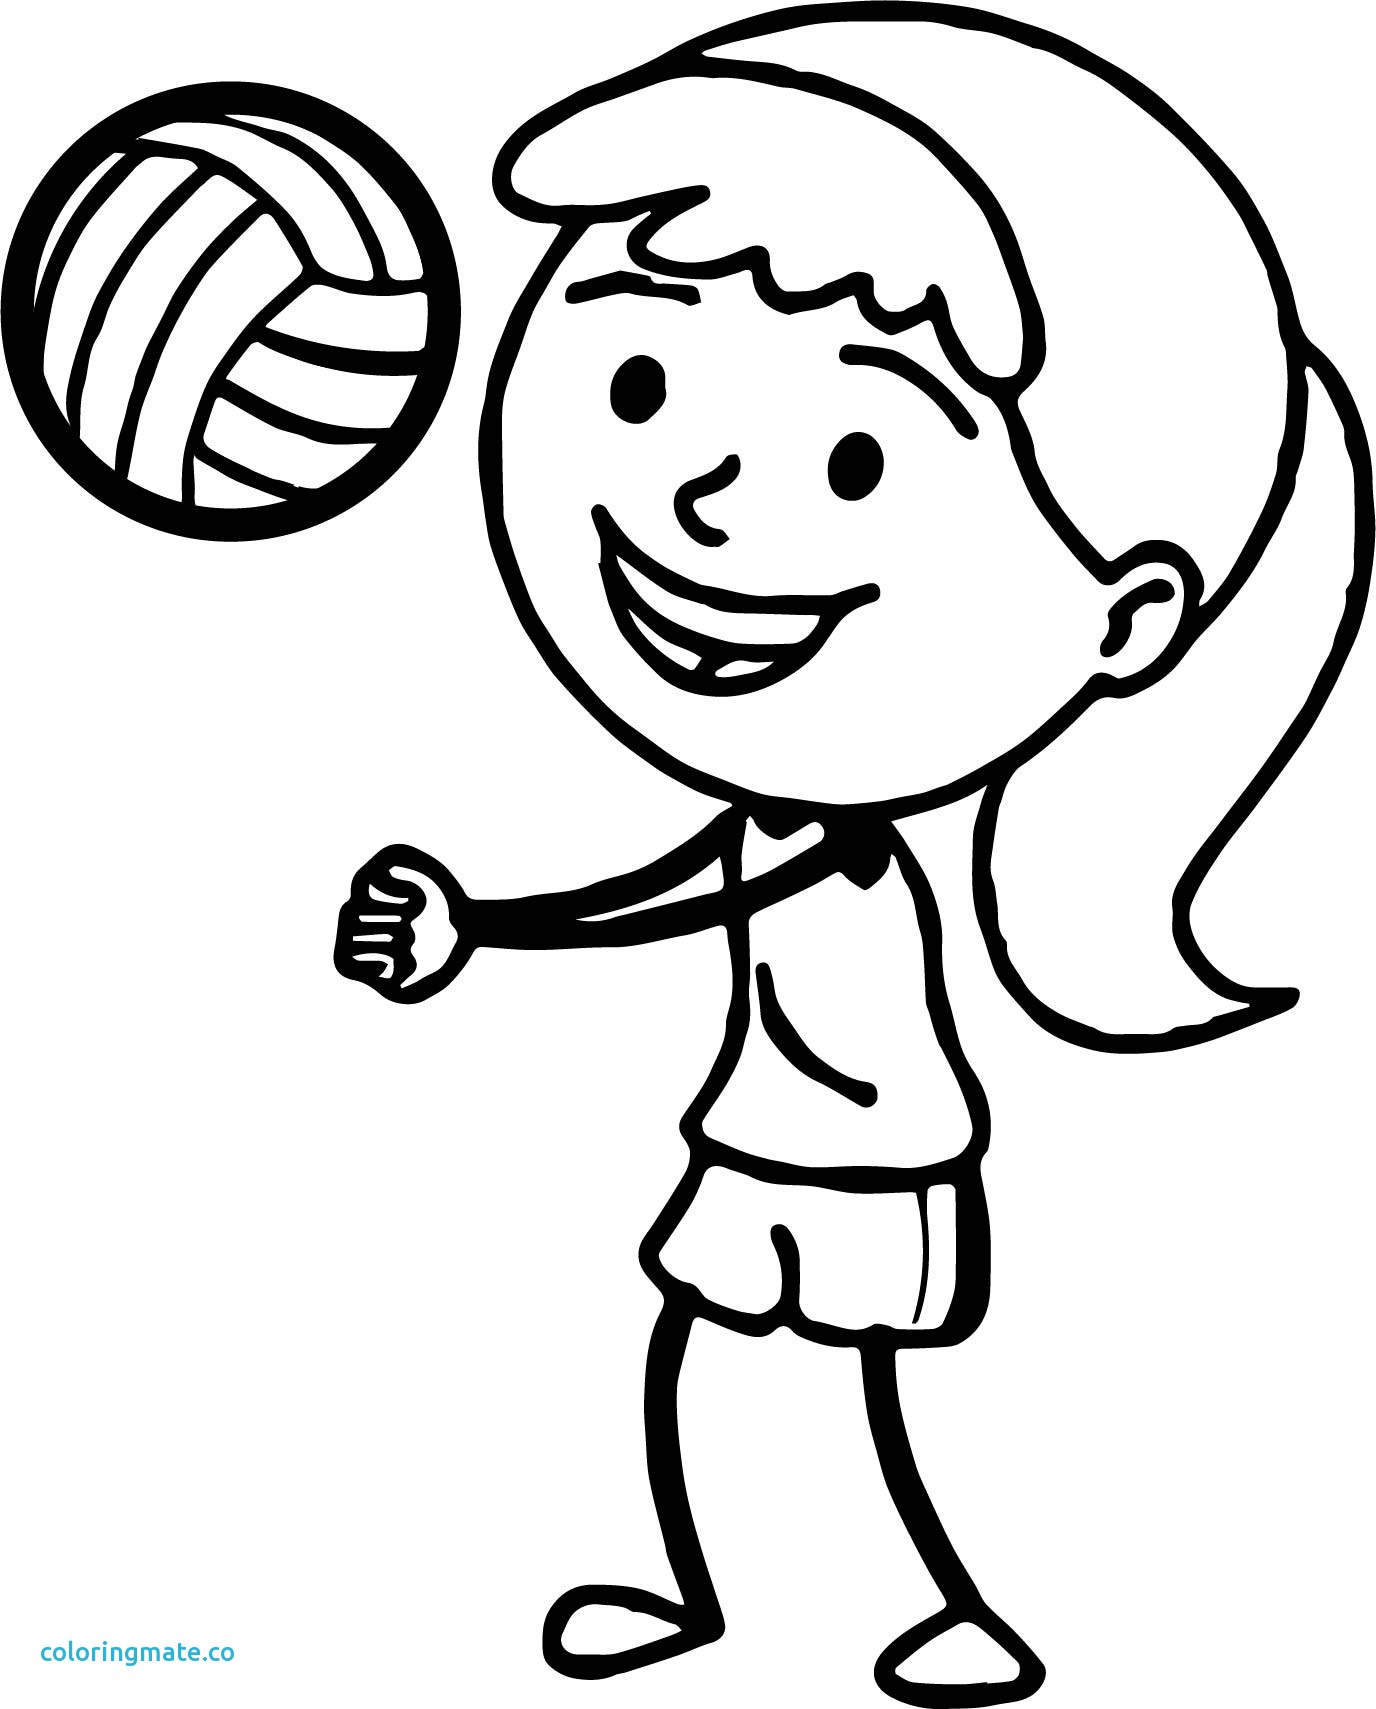 Volleyball Players Drawing At Getdrawings